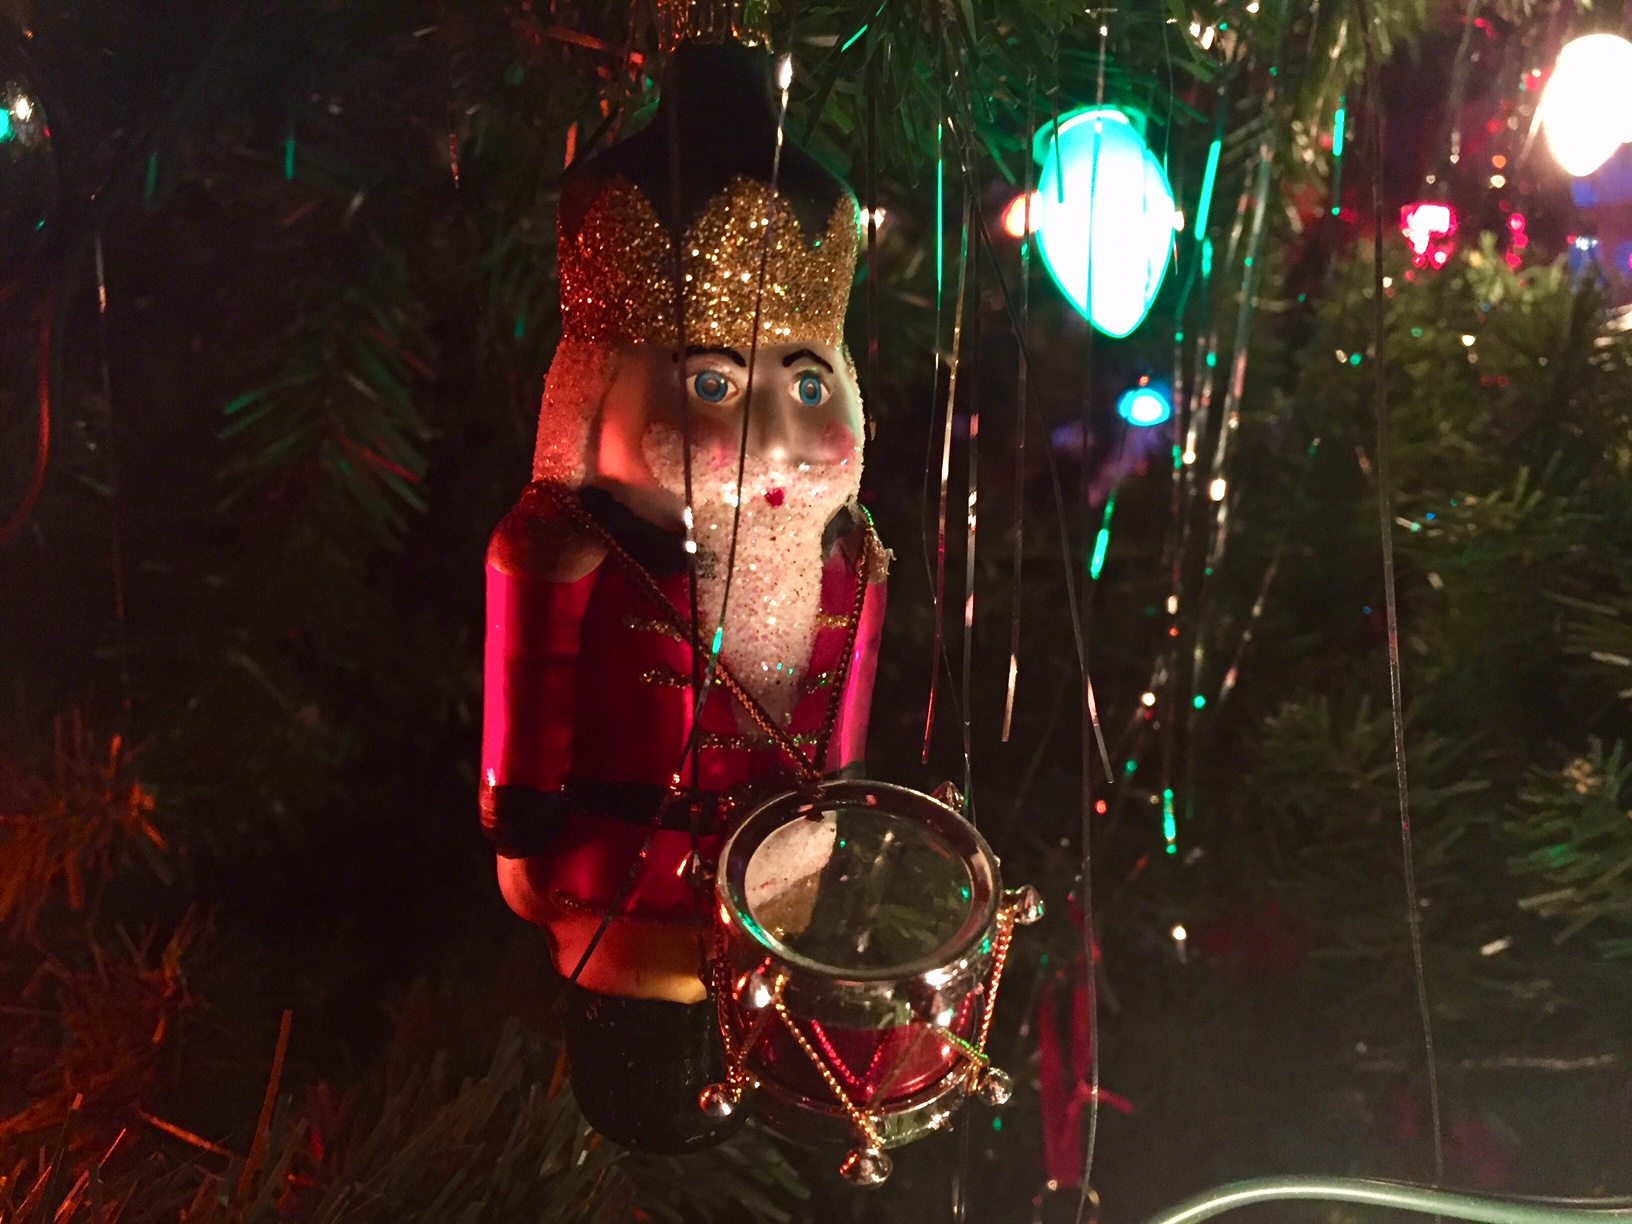 A festive nutcracker ornament featured at the Hearthstone Victorian Christmas in Appleton, December 17, 2017, (WLUK/Lauren Kalil)<p></p>